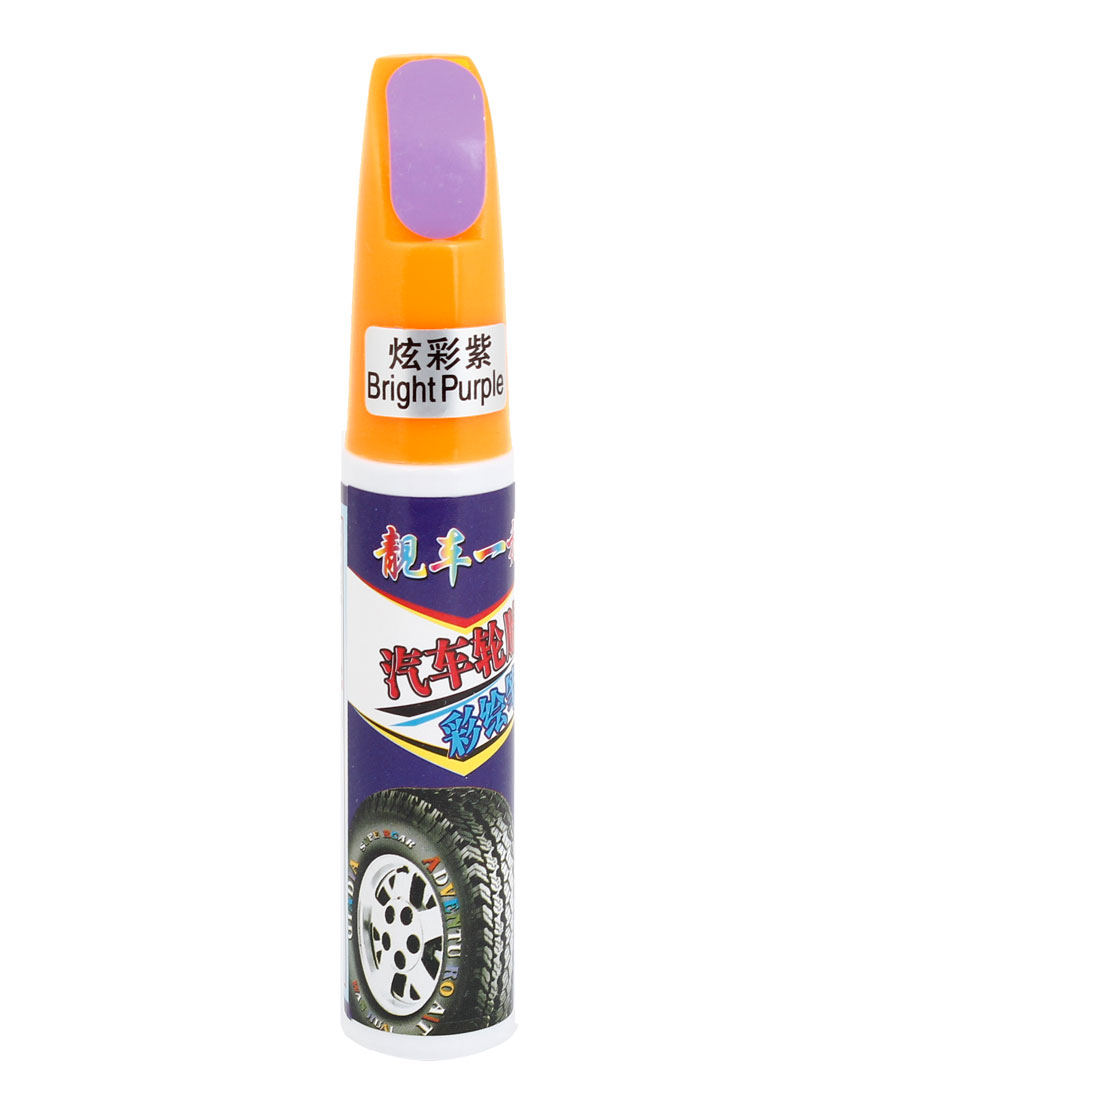 Auto Car Bright Purple 12ml Tire Marker Repairing Paint Pen